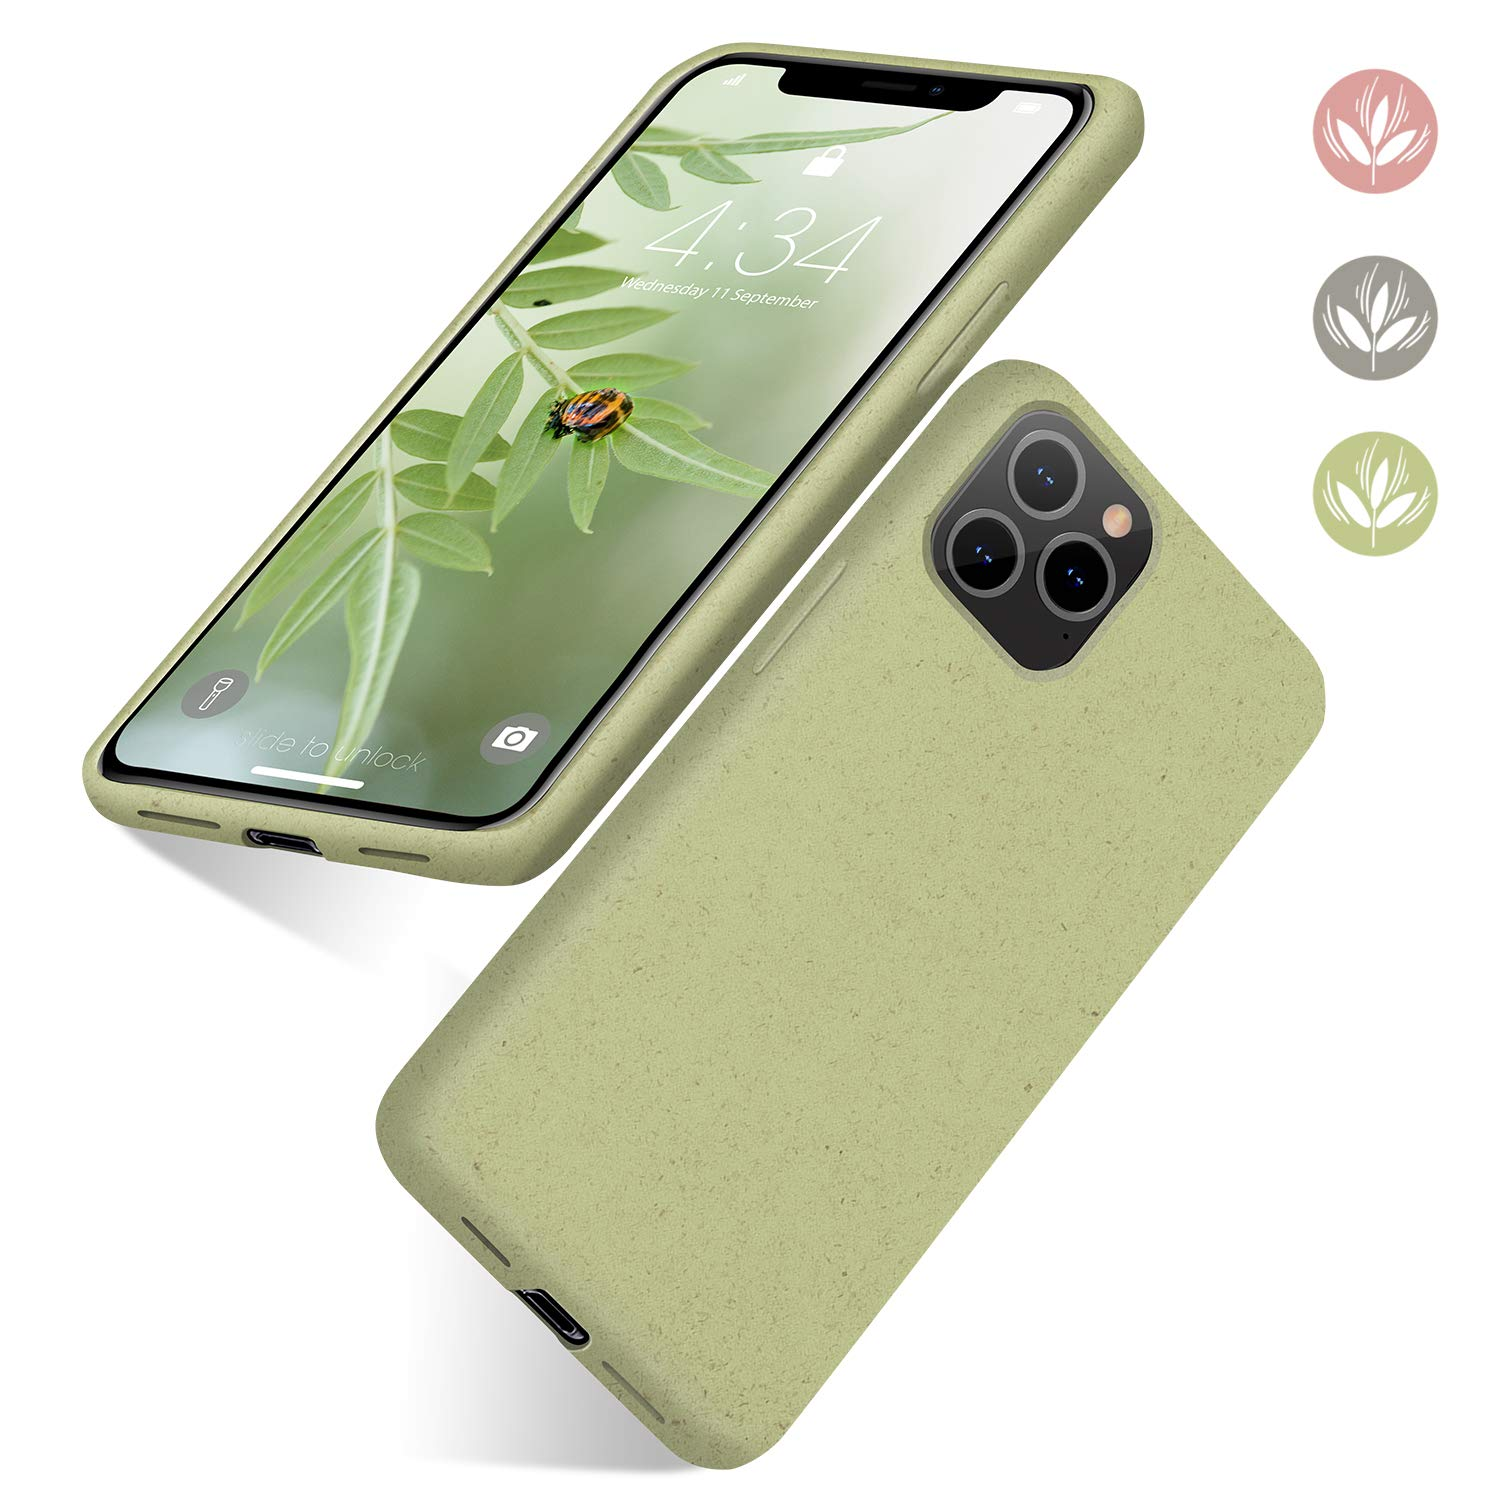 """abitku Eco-Friendly iPhone 11 Pro Max Case, Biodegradable Ultra Slim Fit Straw Phone Cases Soft Protective Back Cover for iPhone 11 Pro Max 6.5"""" 2019-Light Green"""